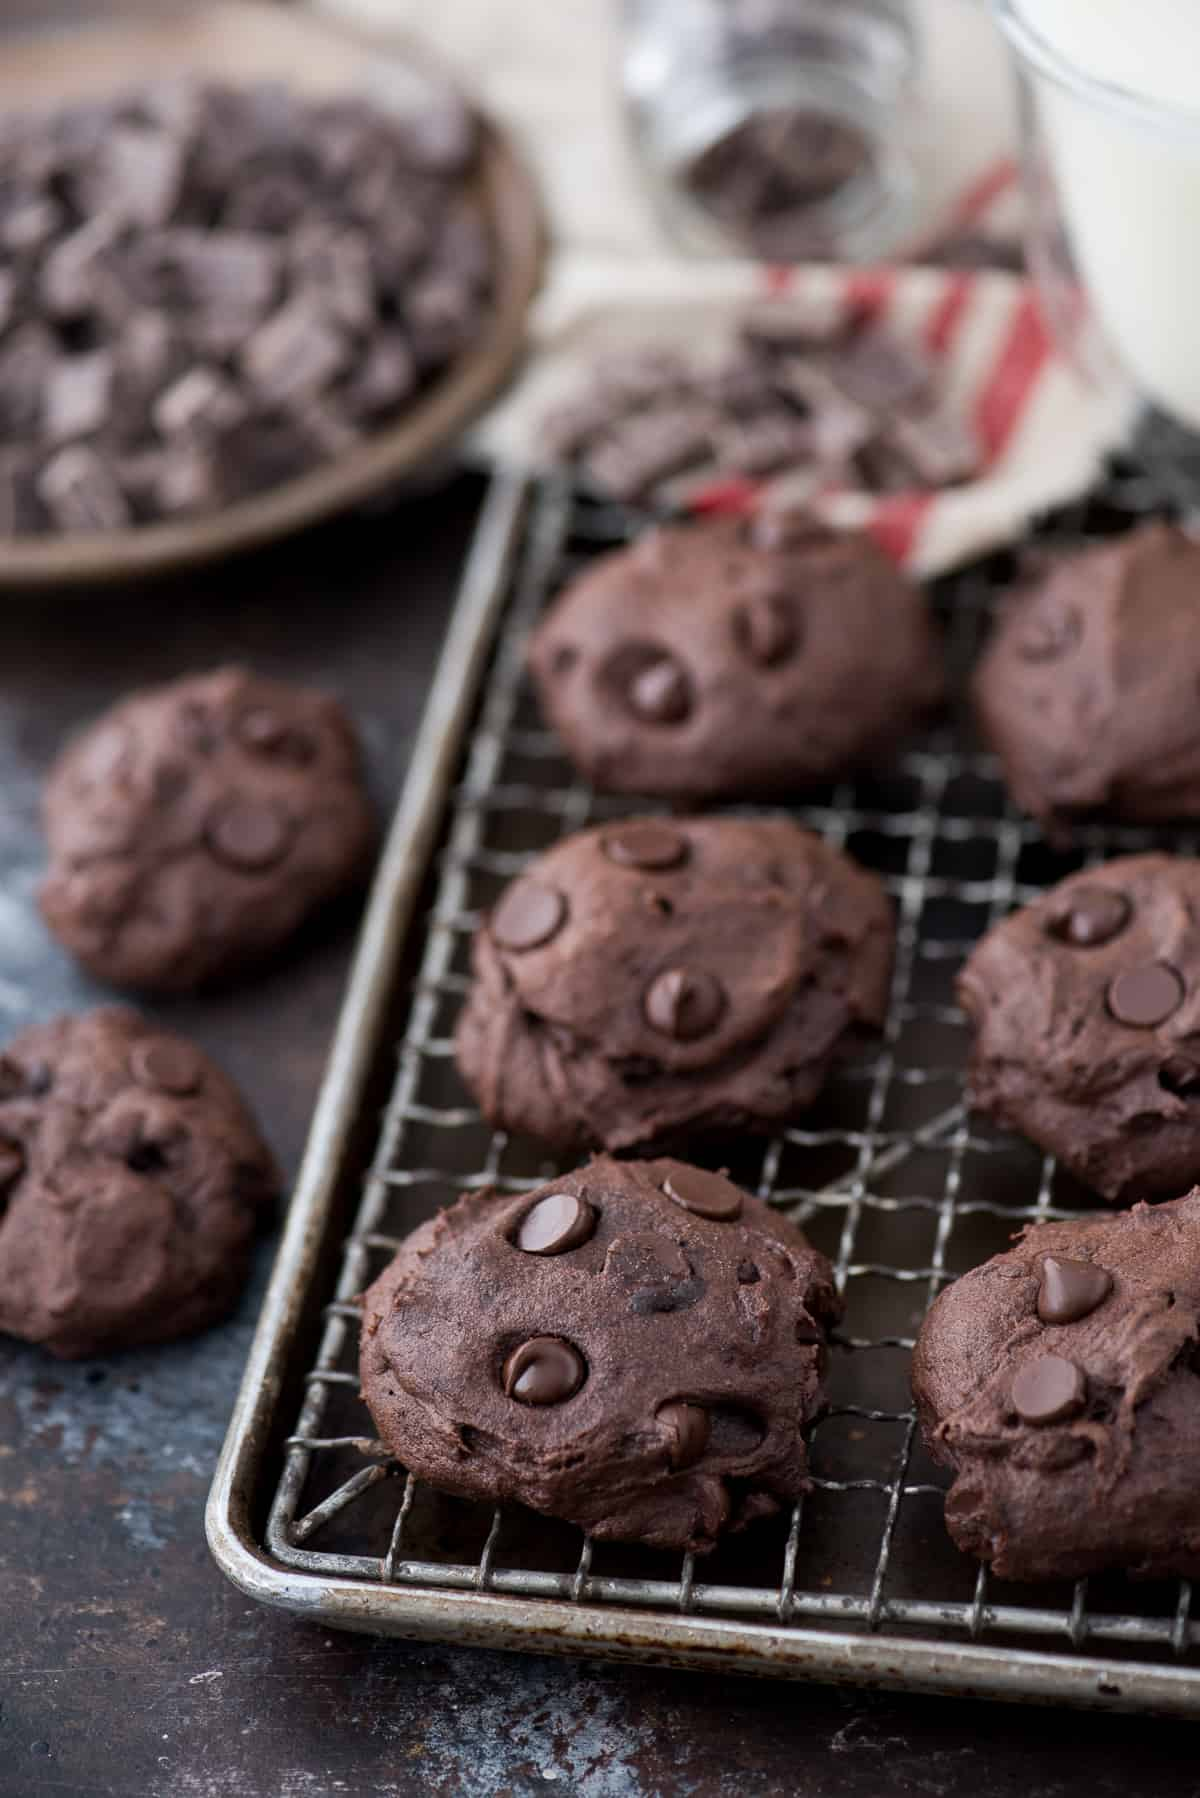 These healthier dark chocolate coconut oil cookies are estimated to be 150 calories. I love that the recipe calls for ordinary ingredients, and no refined sugar, butter or oil!